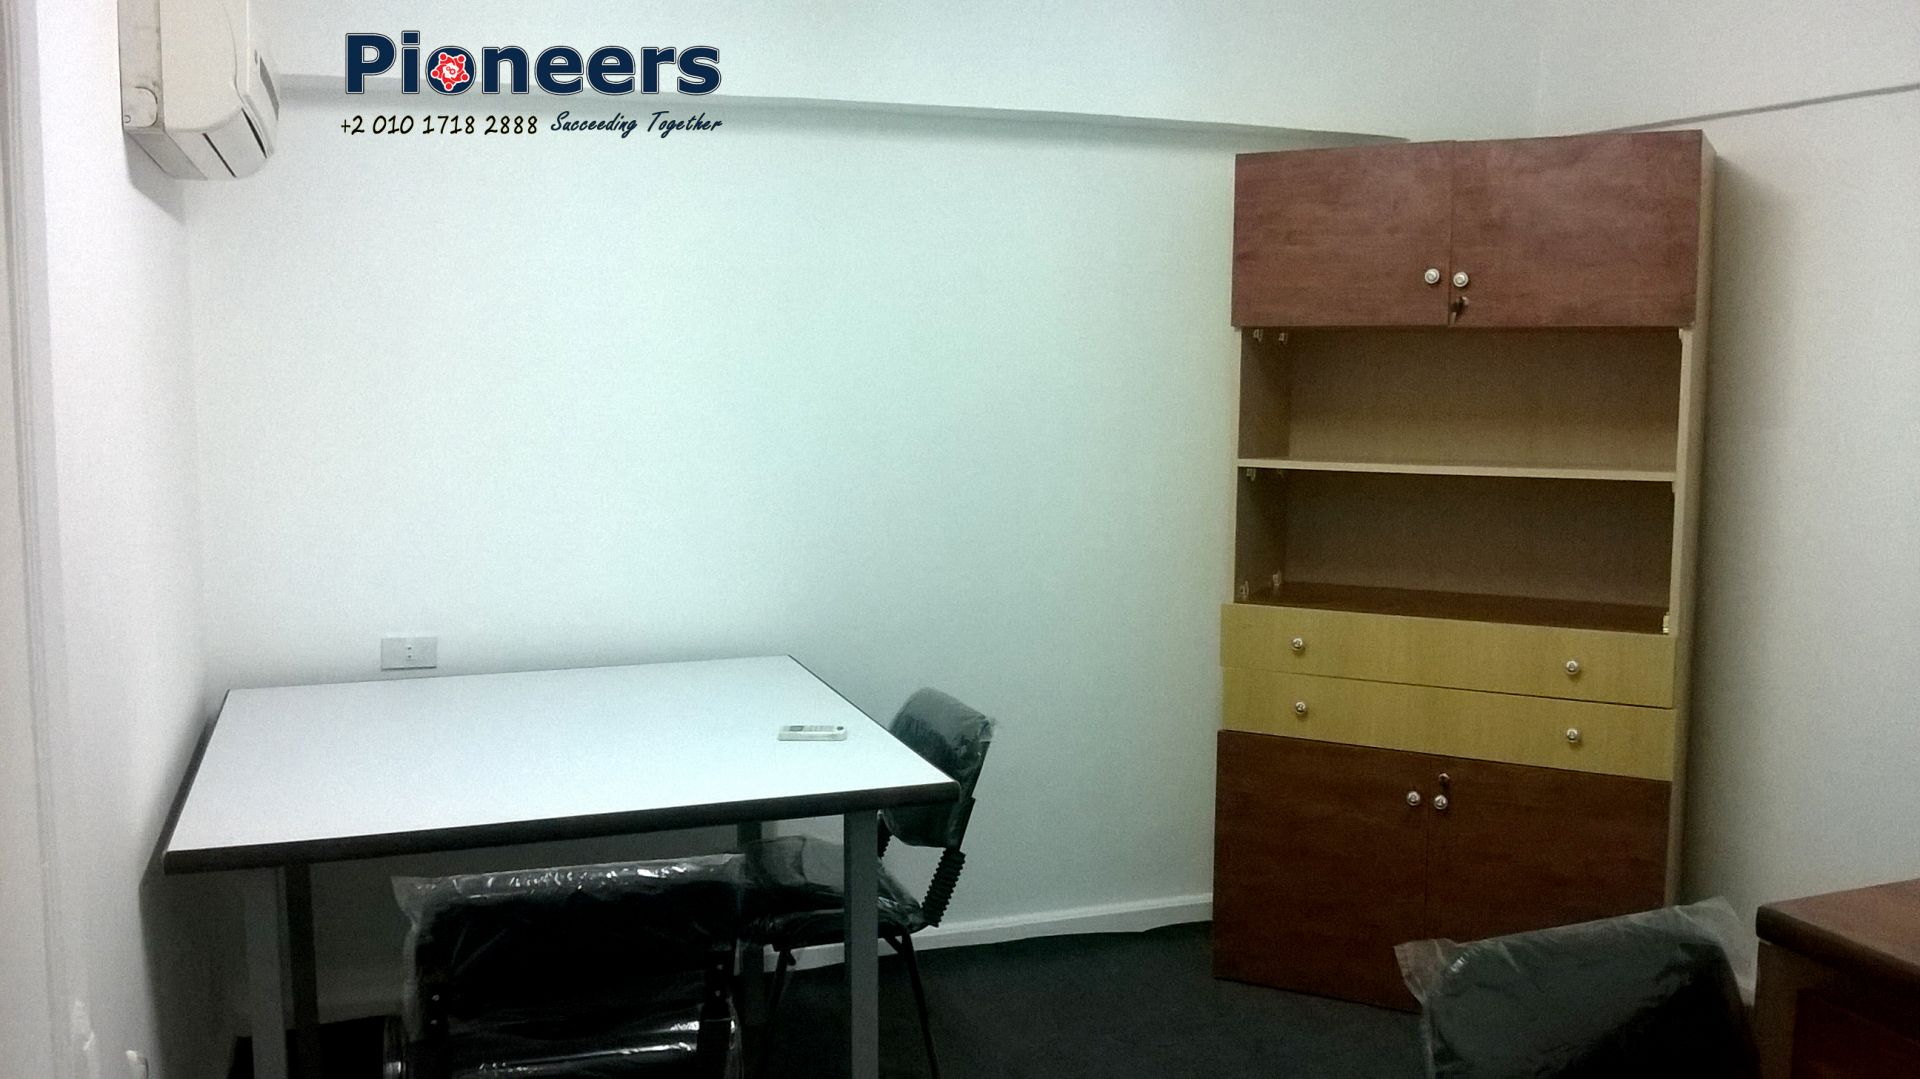 Pioneers Coworking Space, Cairo